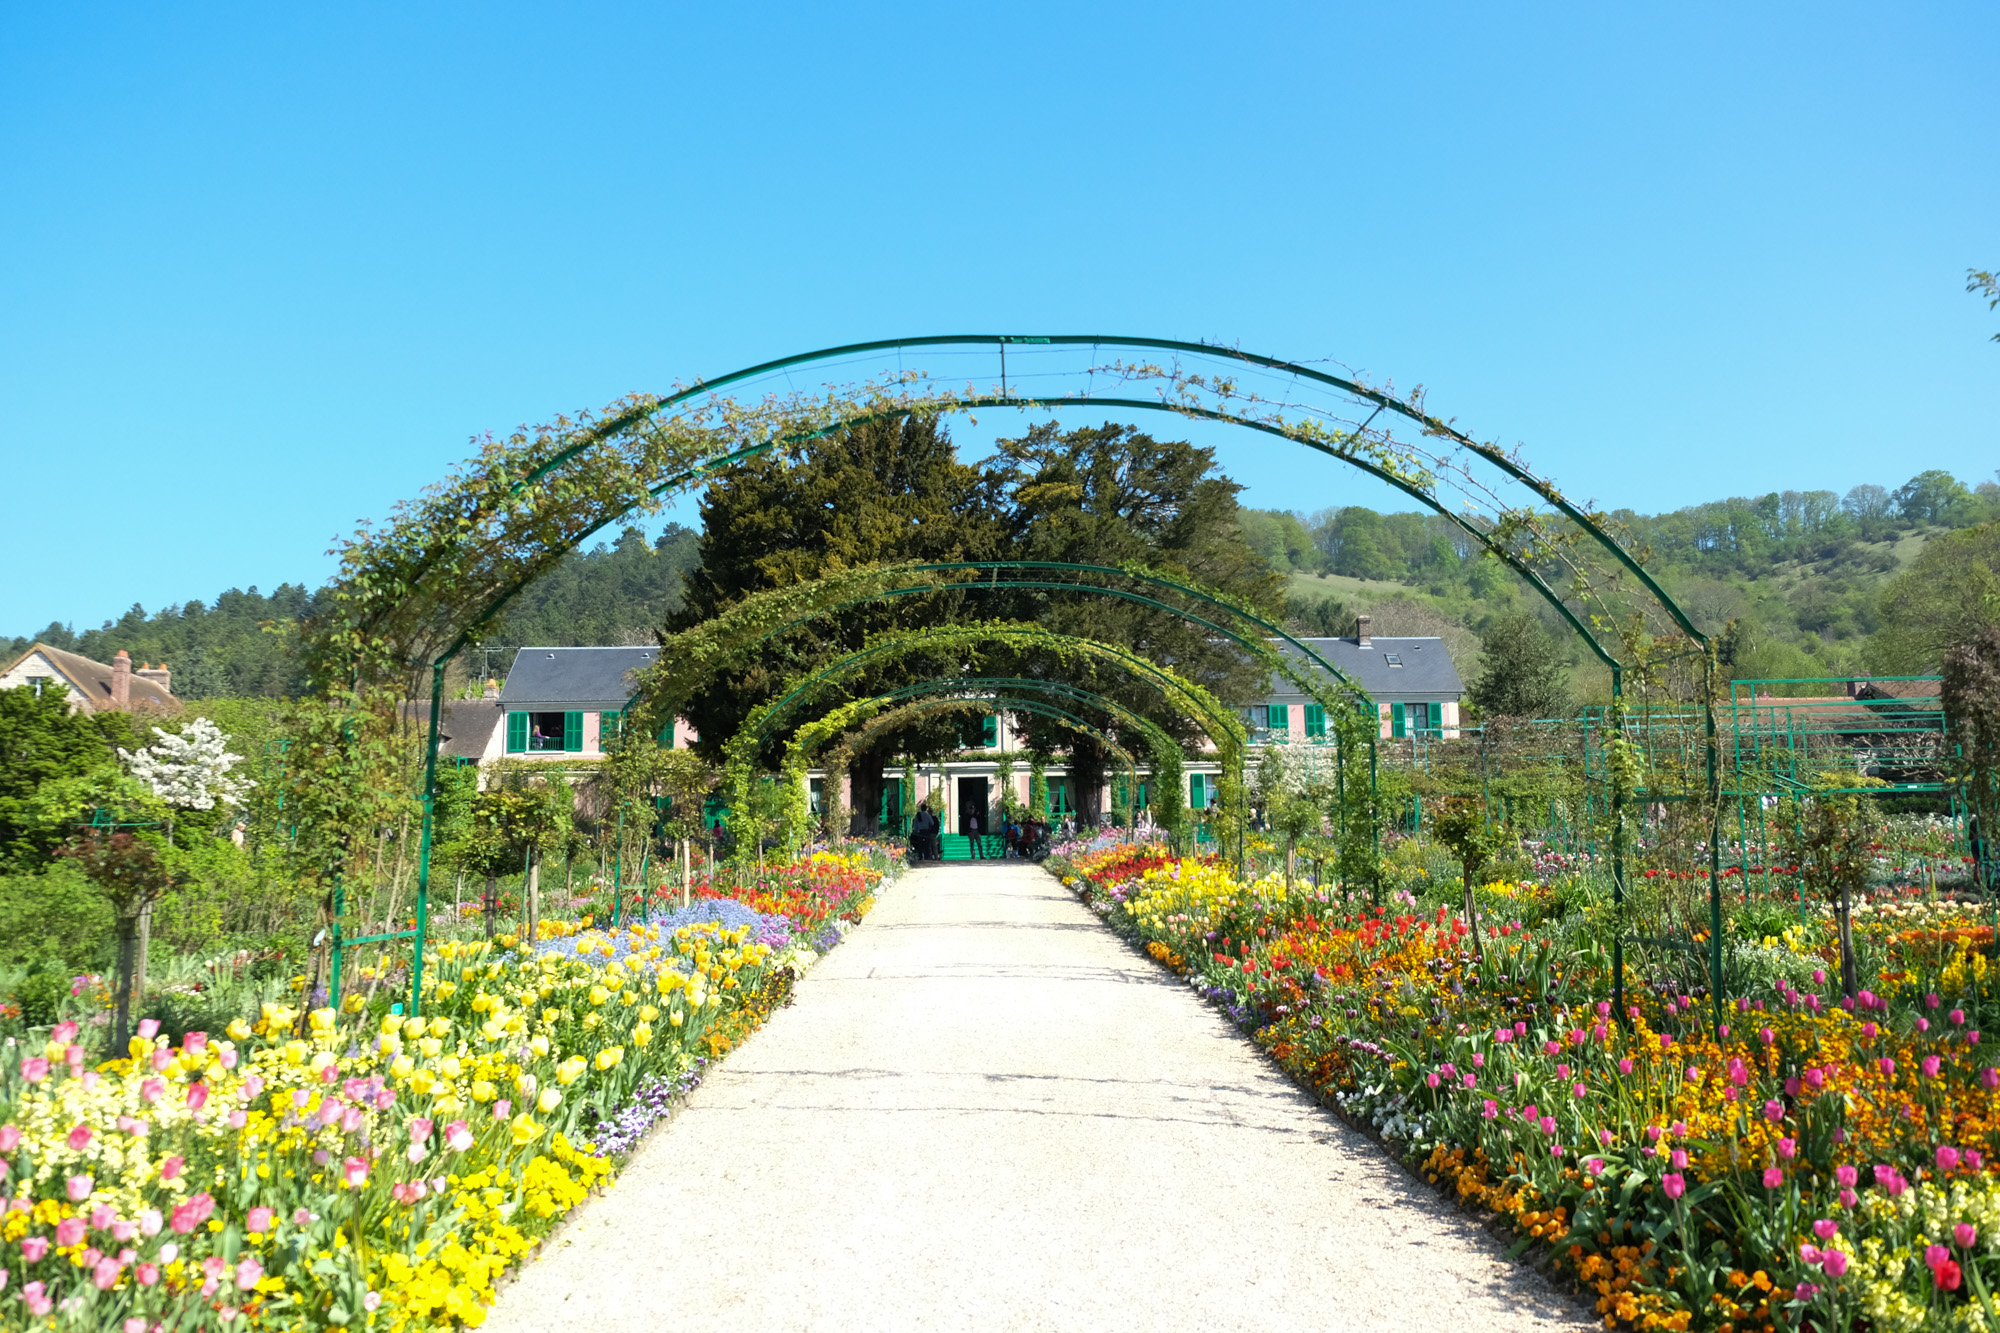 Homepage clyne blog lifestyle voyage for Monet jardin giverny